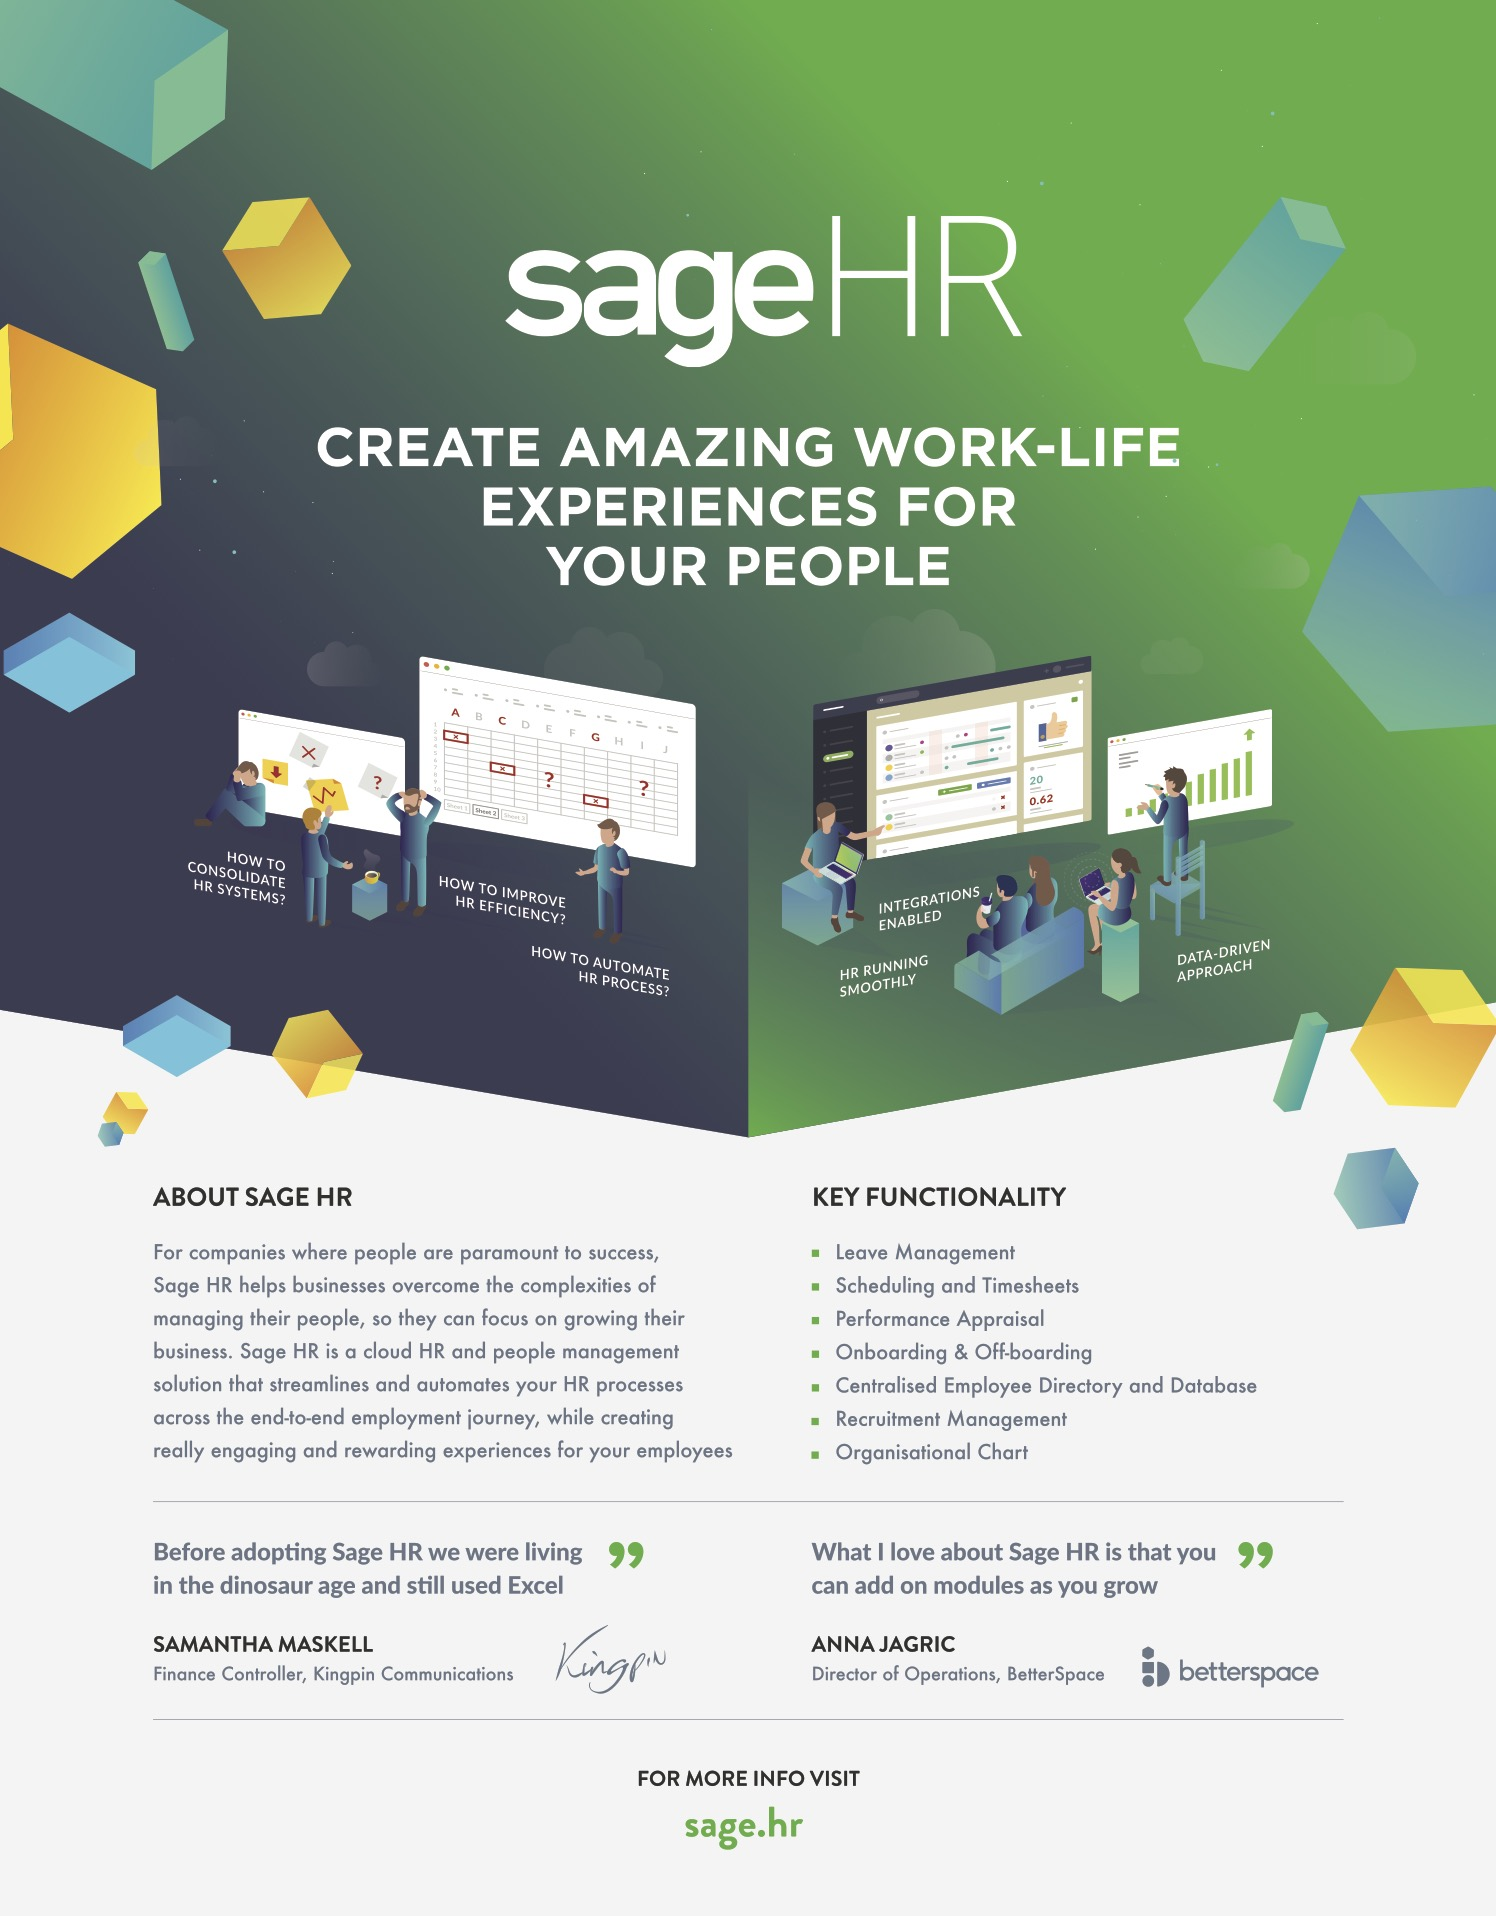 Sage HR - create amazing work-life experiences for you people!